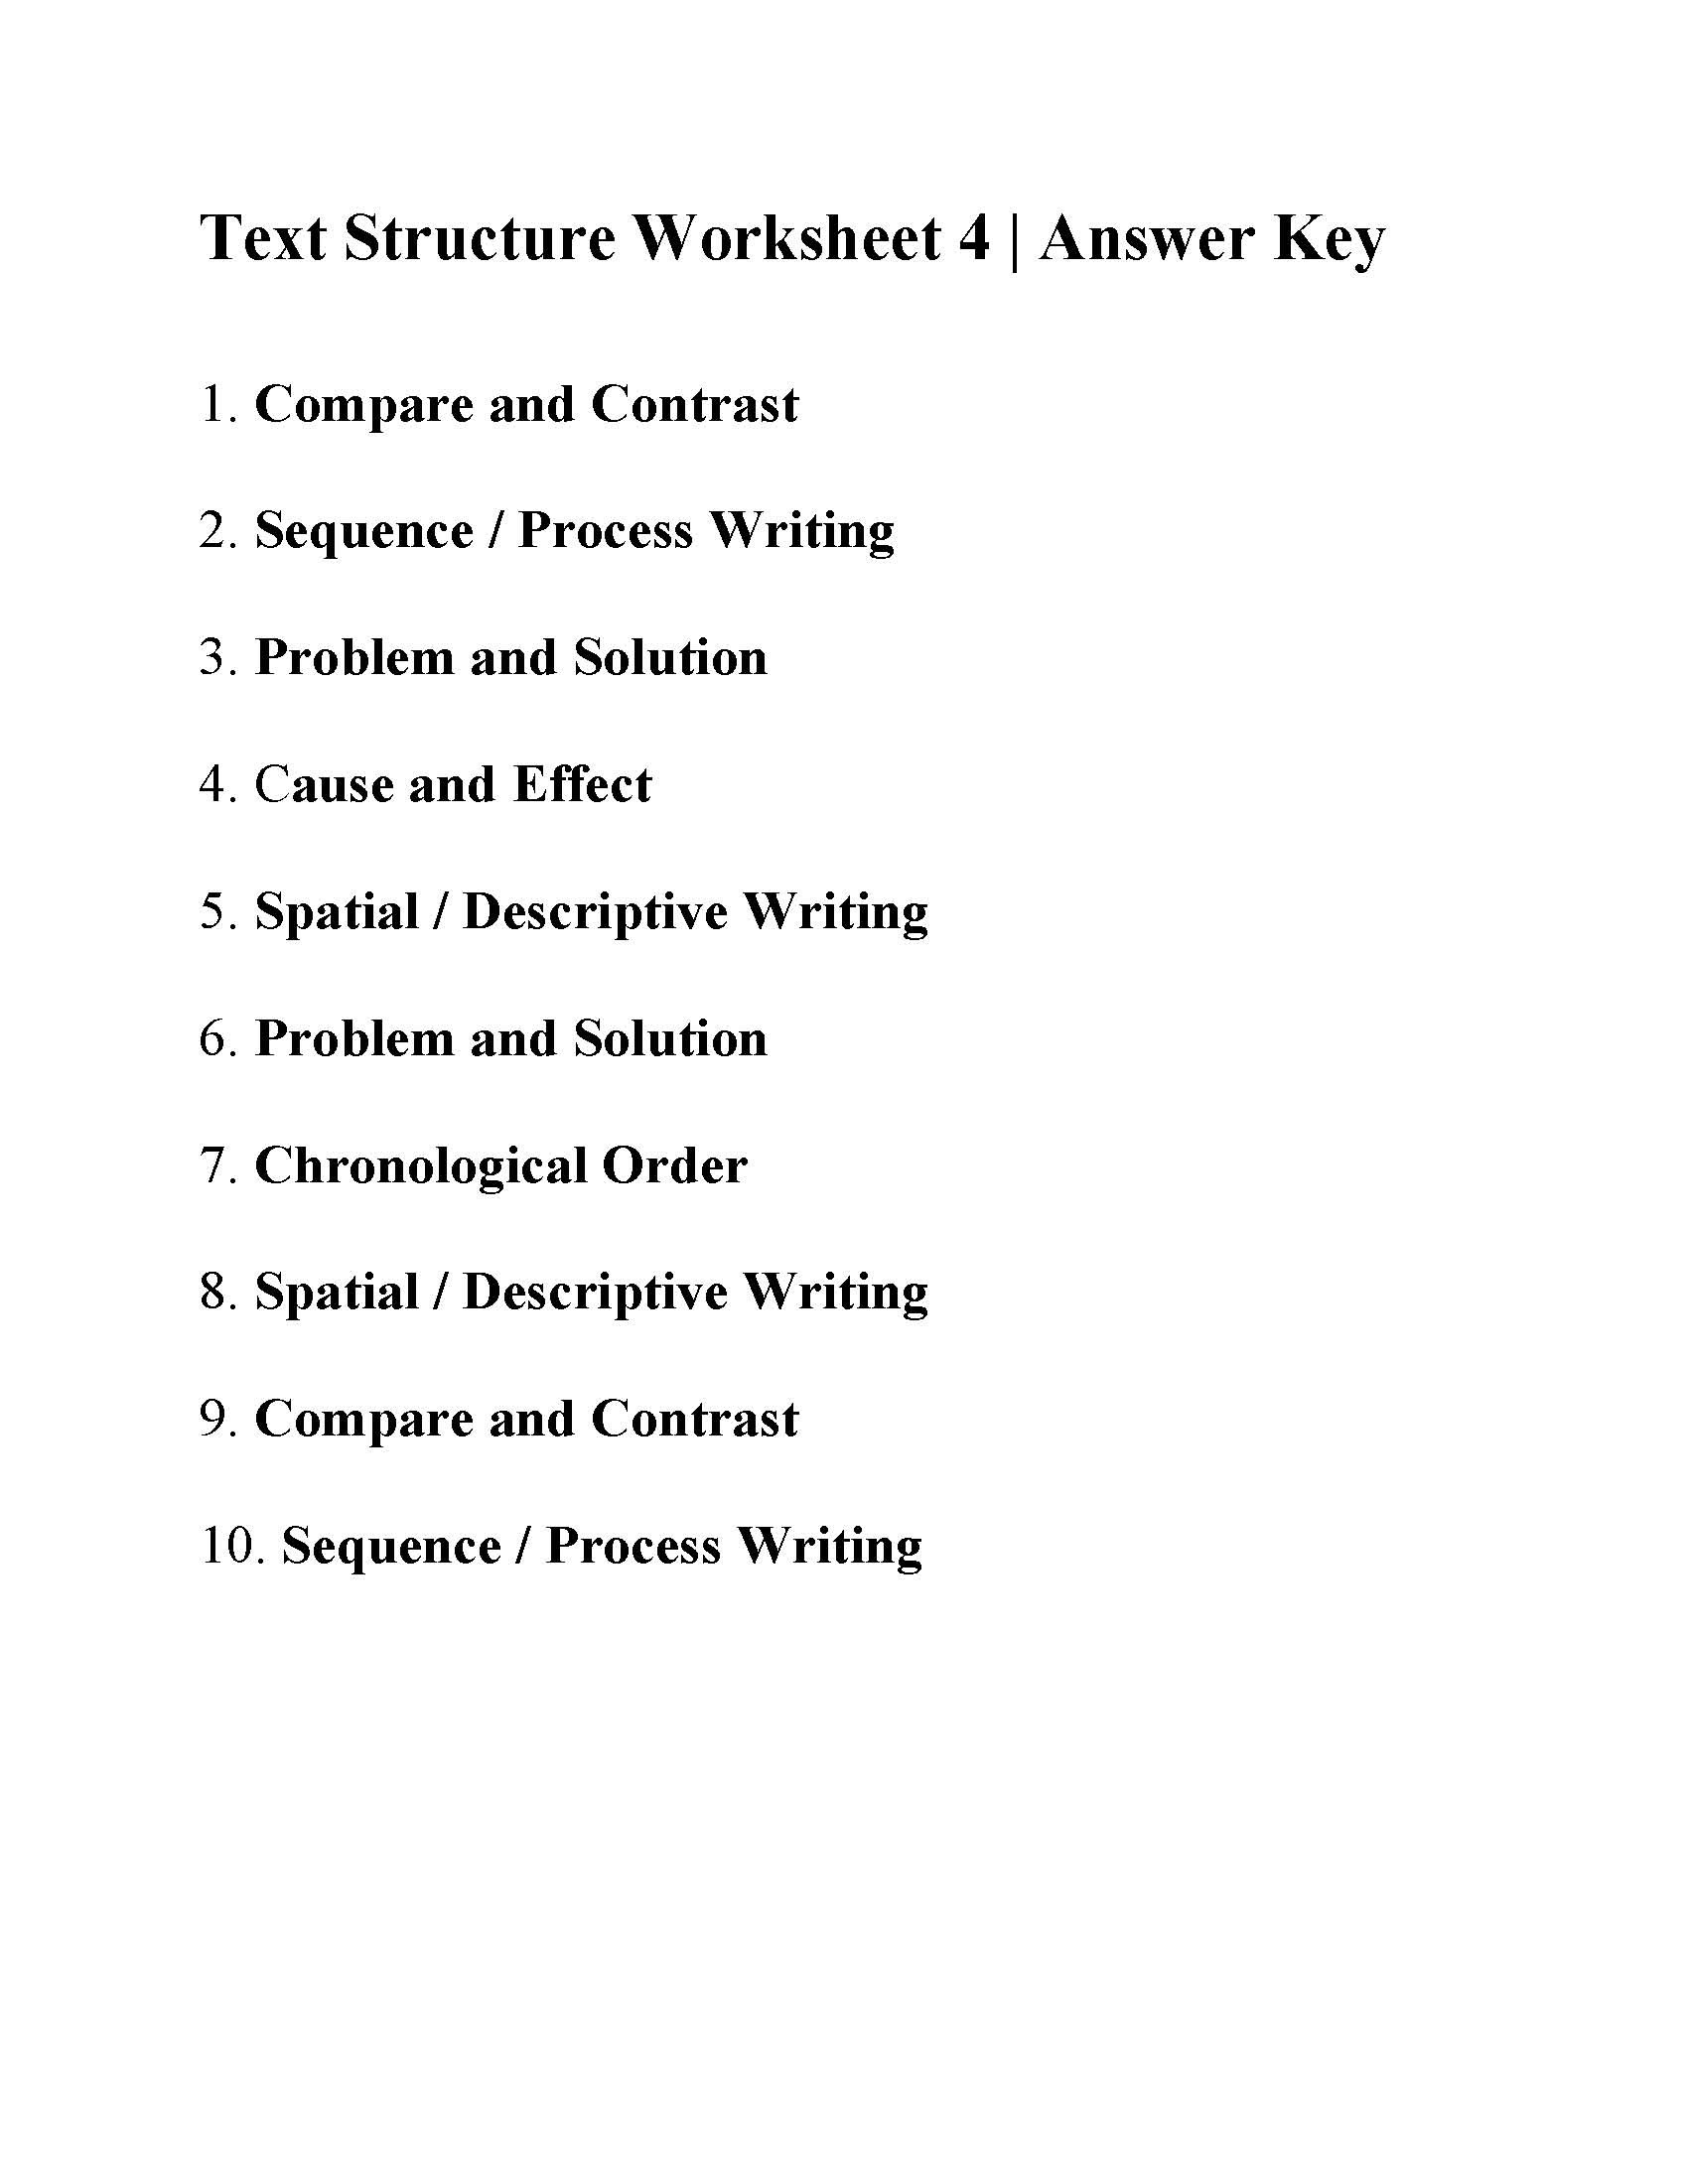 Text Structure Worksheet 4